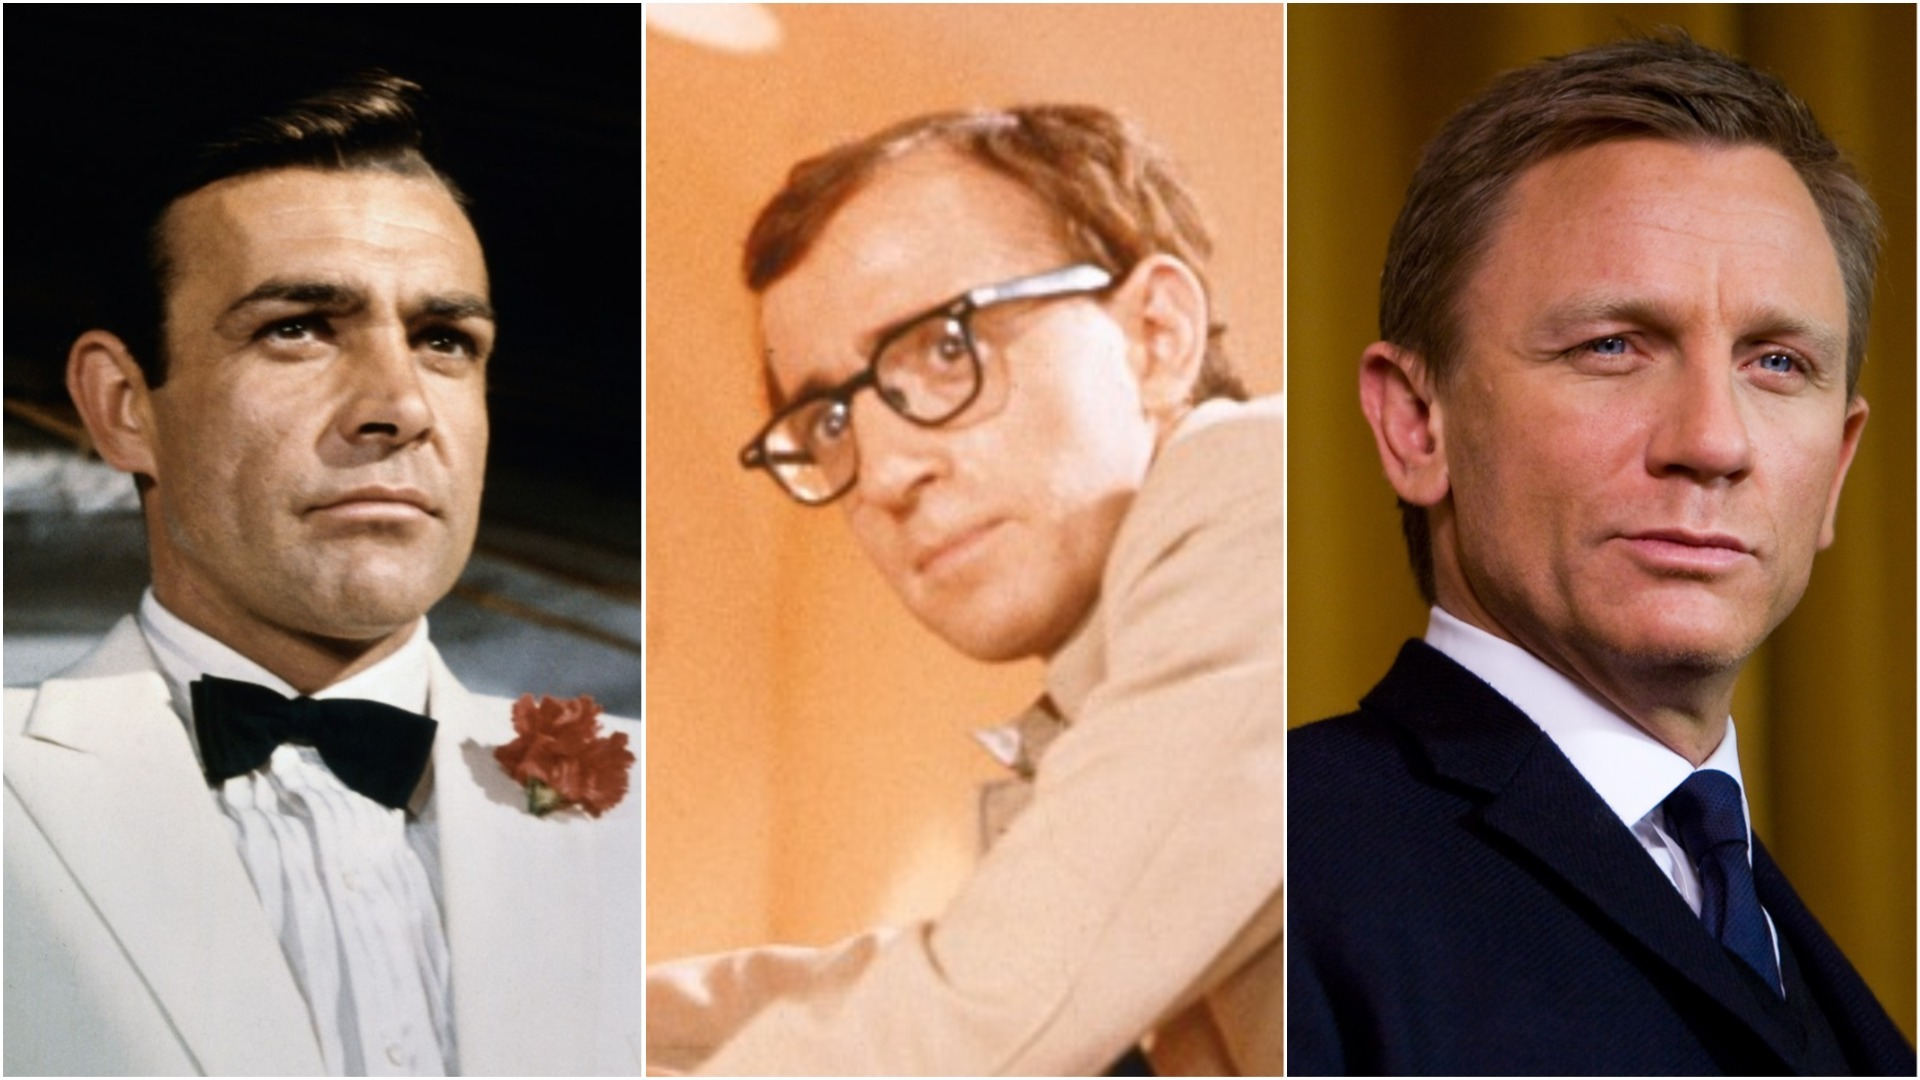 James Bond Actors From Sean Connery To Daniel Craig And